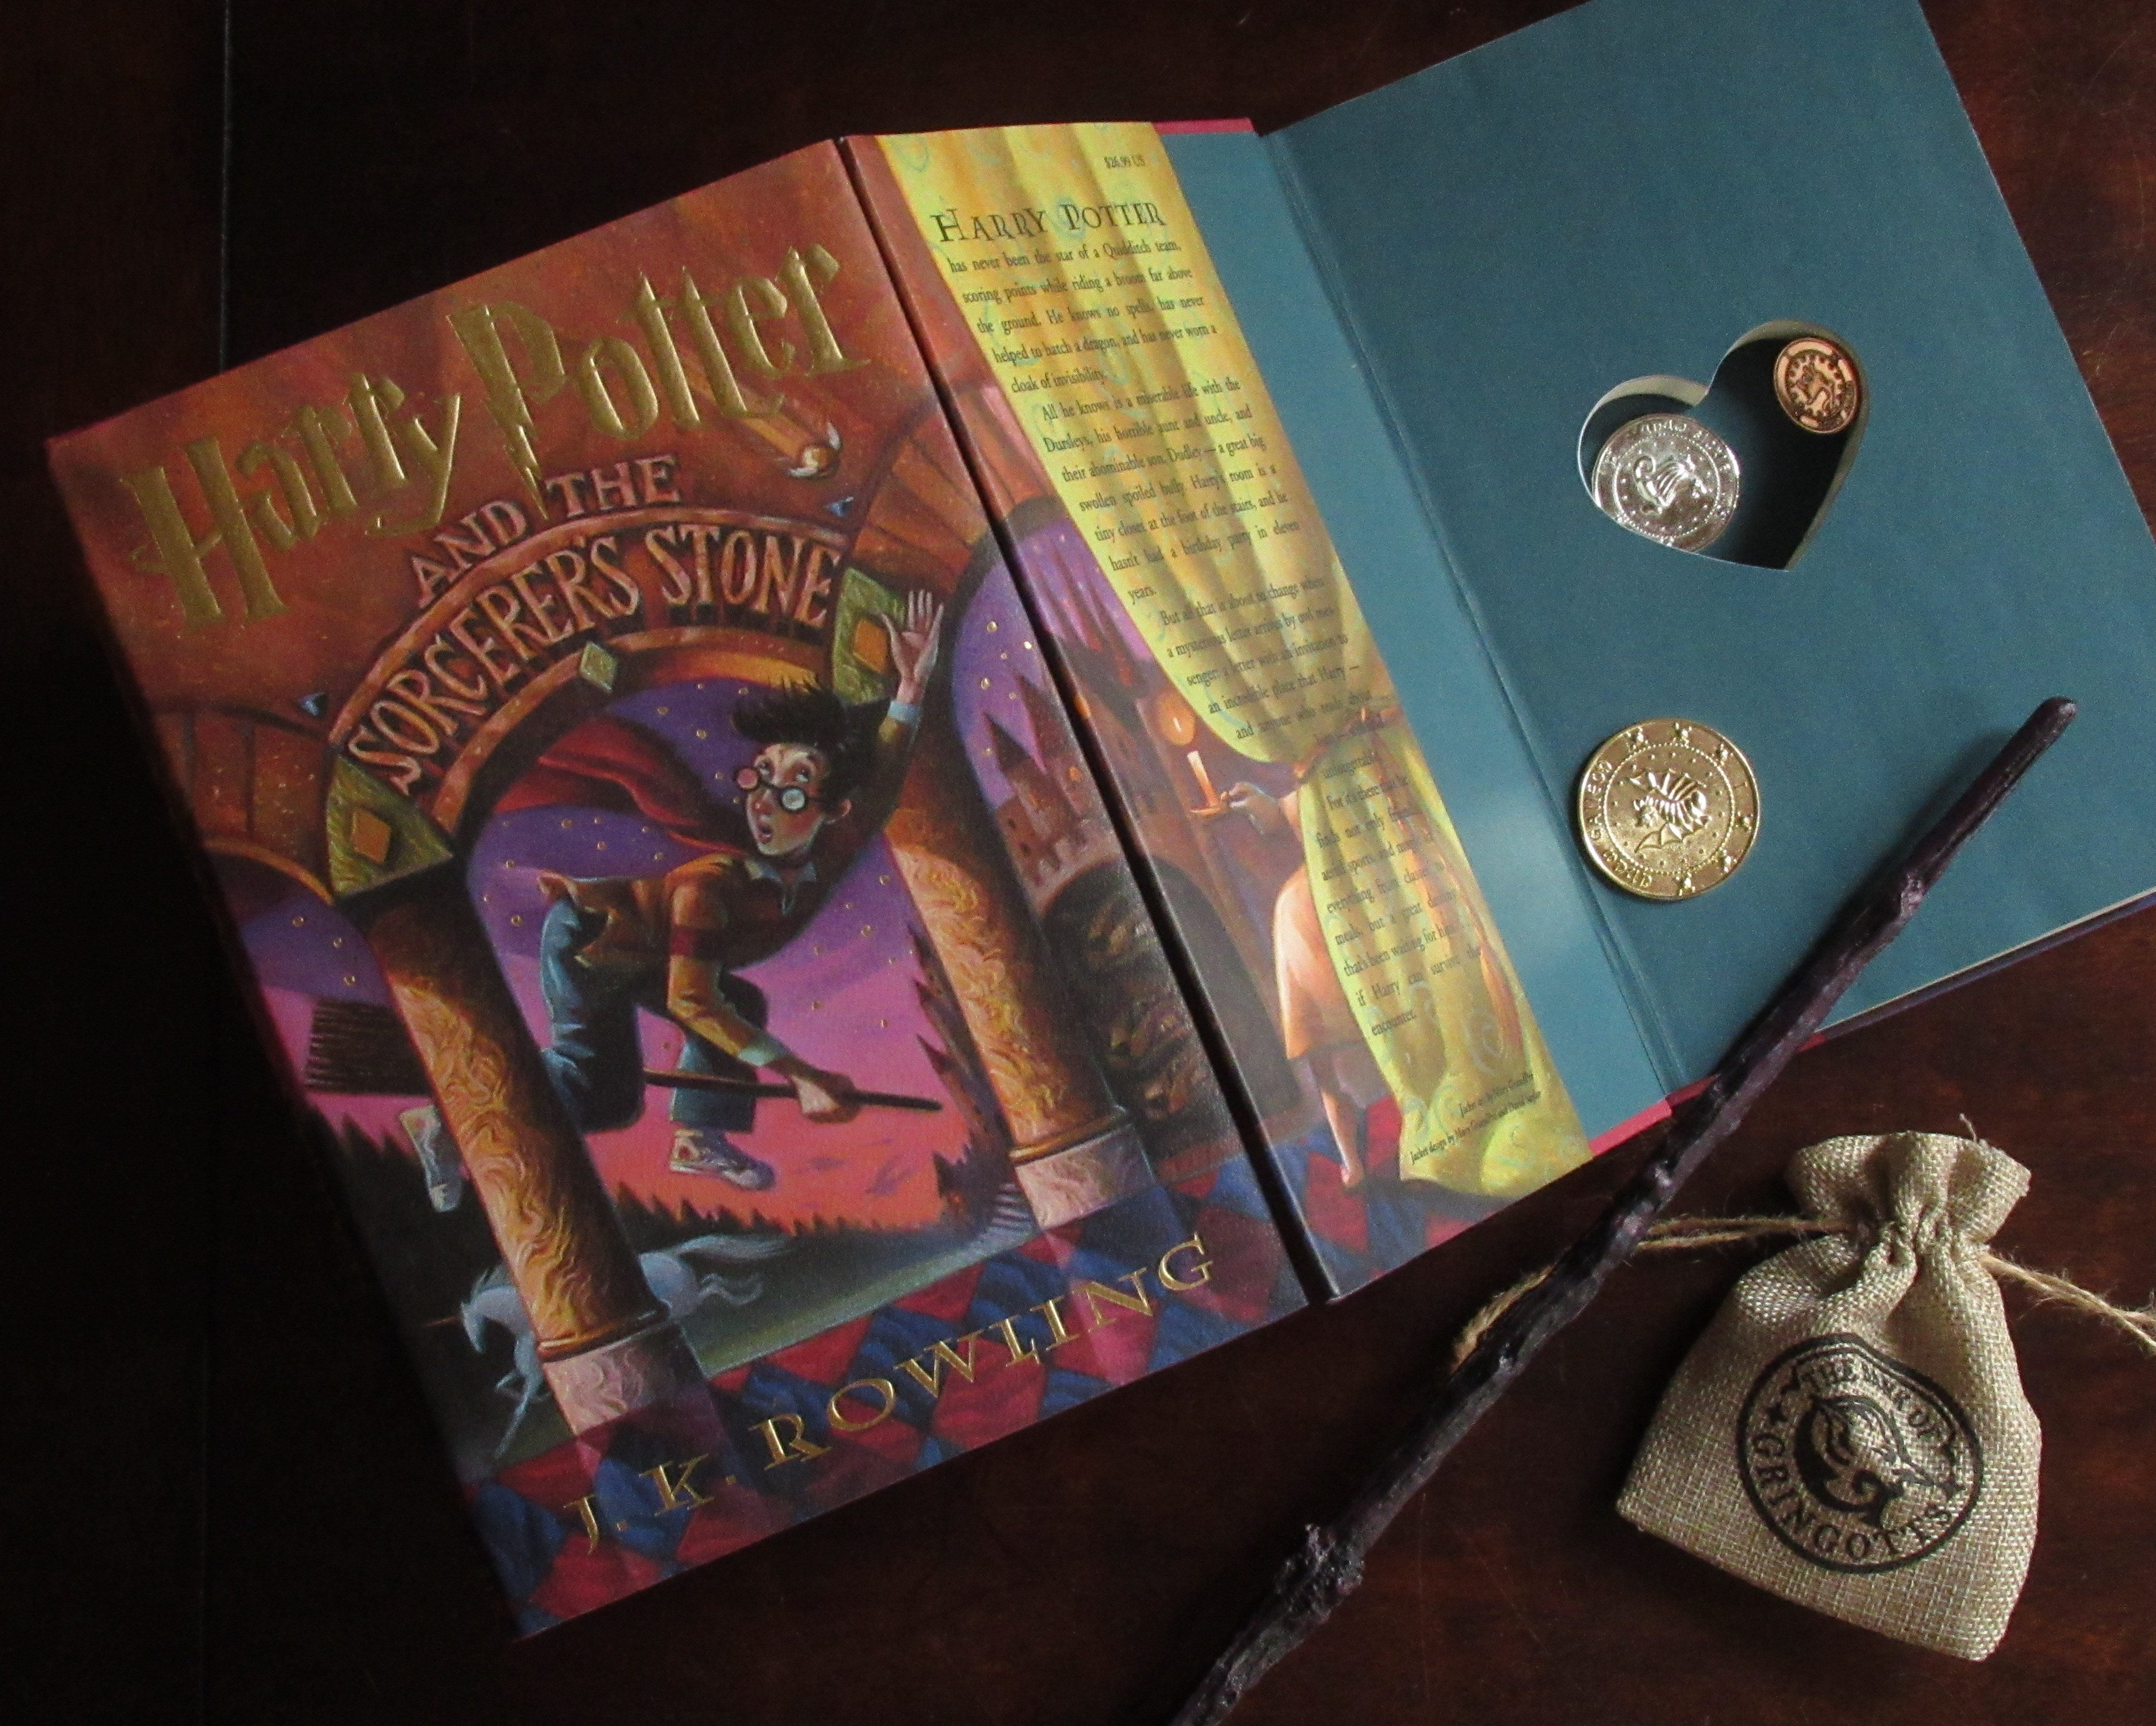 Harry Potter & the Sorcerer's Stone (with Heart cutout)